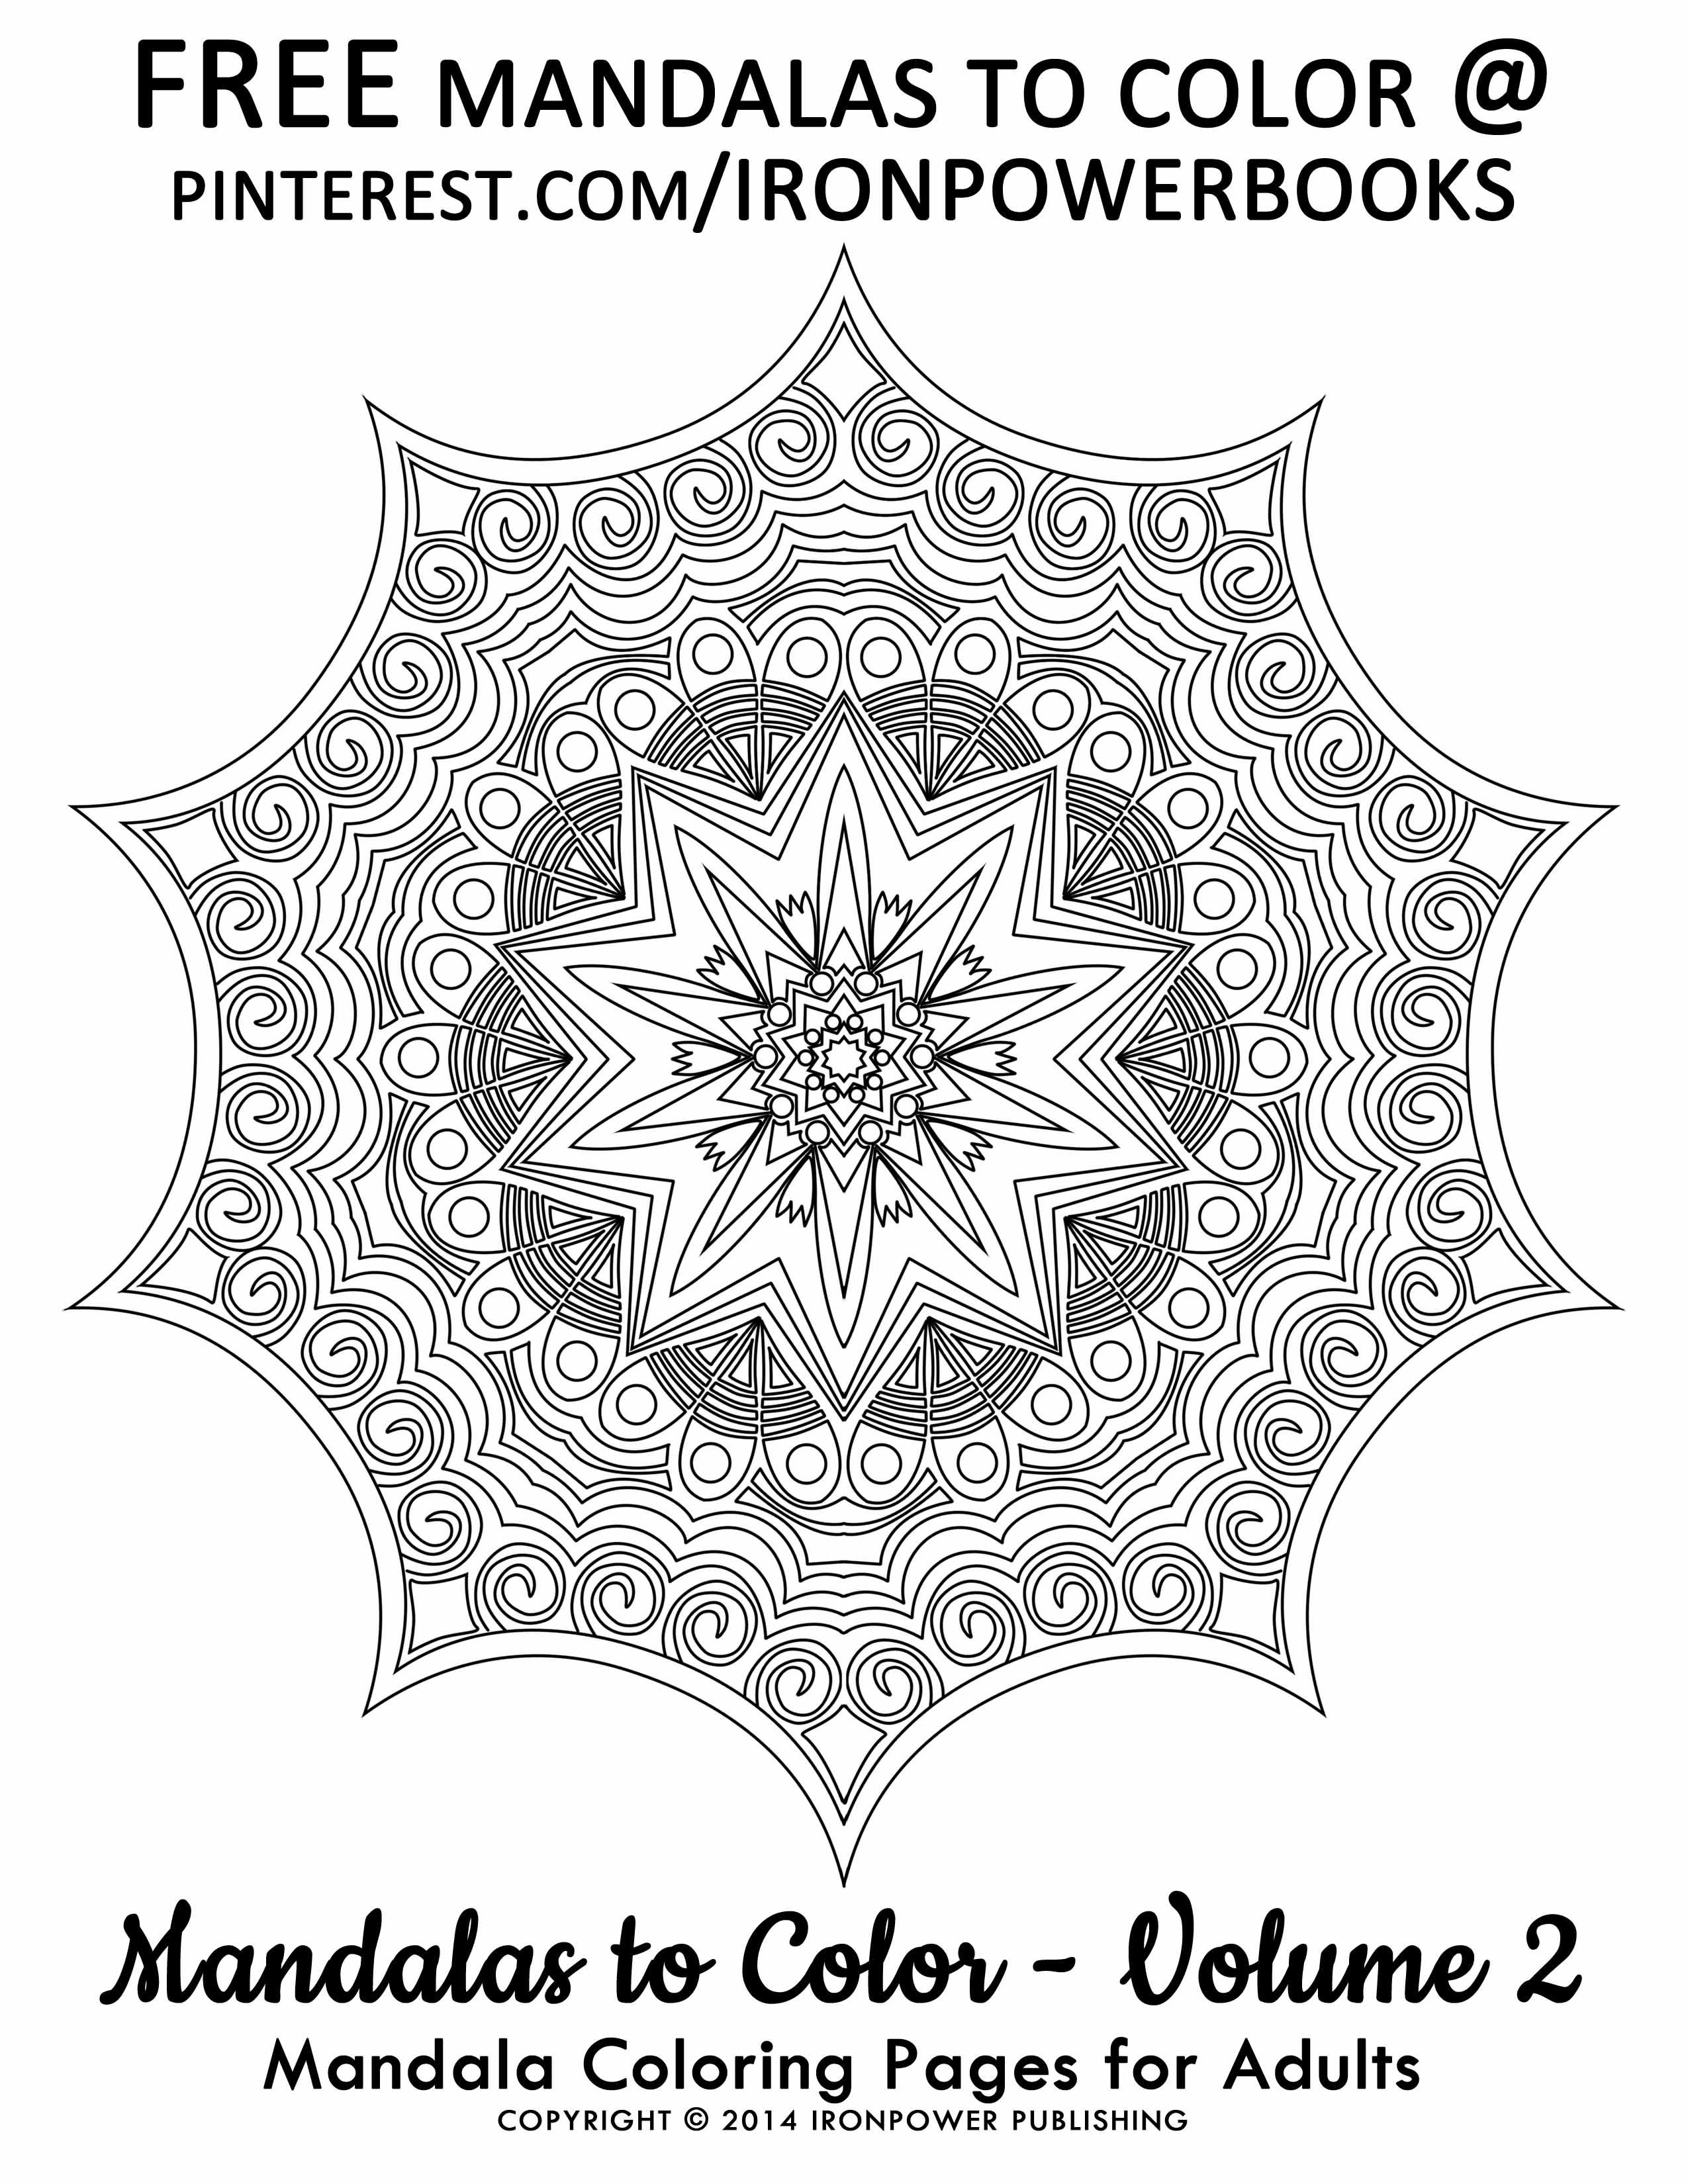 free mandala coloring pages ironpowerbooks boards  this